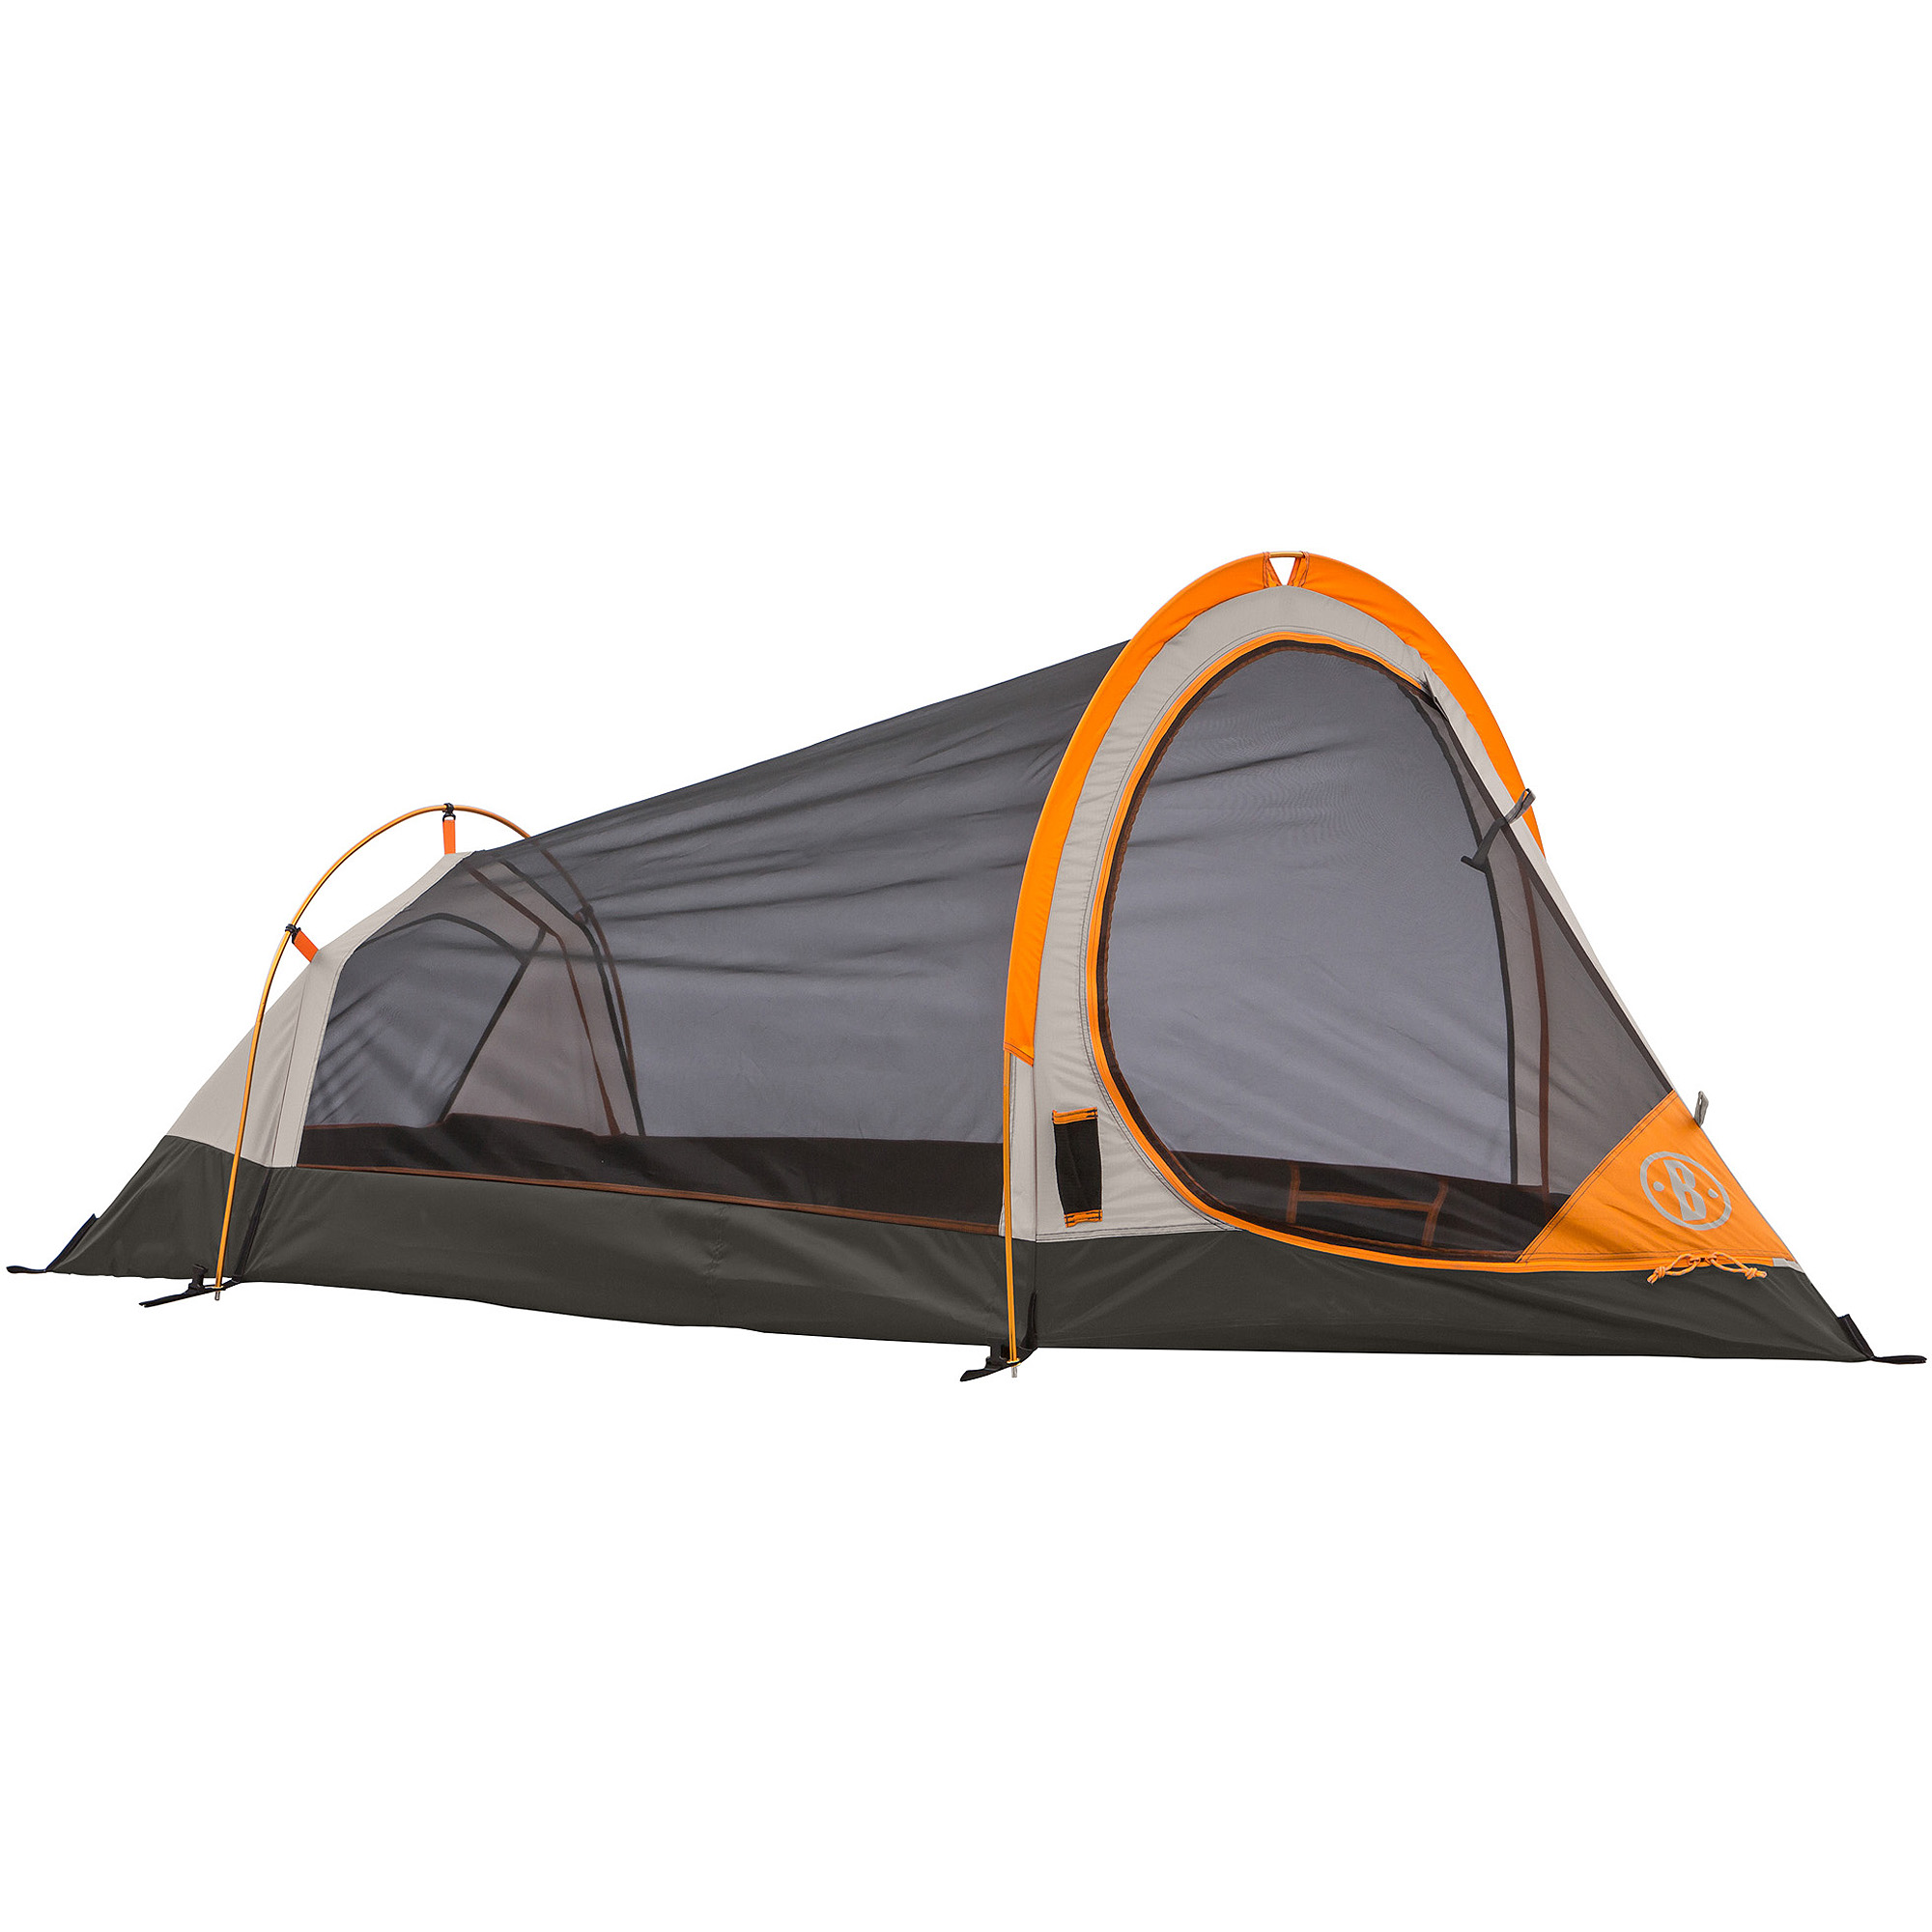 Bushnell Roam Series 8.5u0027 x 3u0027 Backpacking Tent Sleeps 1 - Walmart.com  sc 1 st  Walmart & Bushnell Roam Series 8.5u0027 x 3u0027 Backpacking Tent Sleeps 1 ...